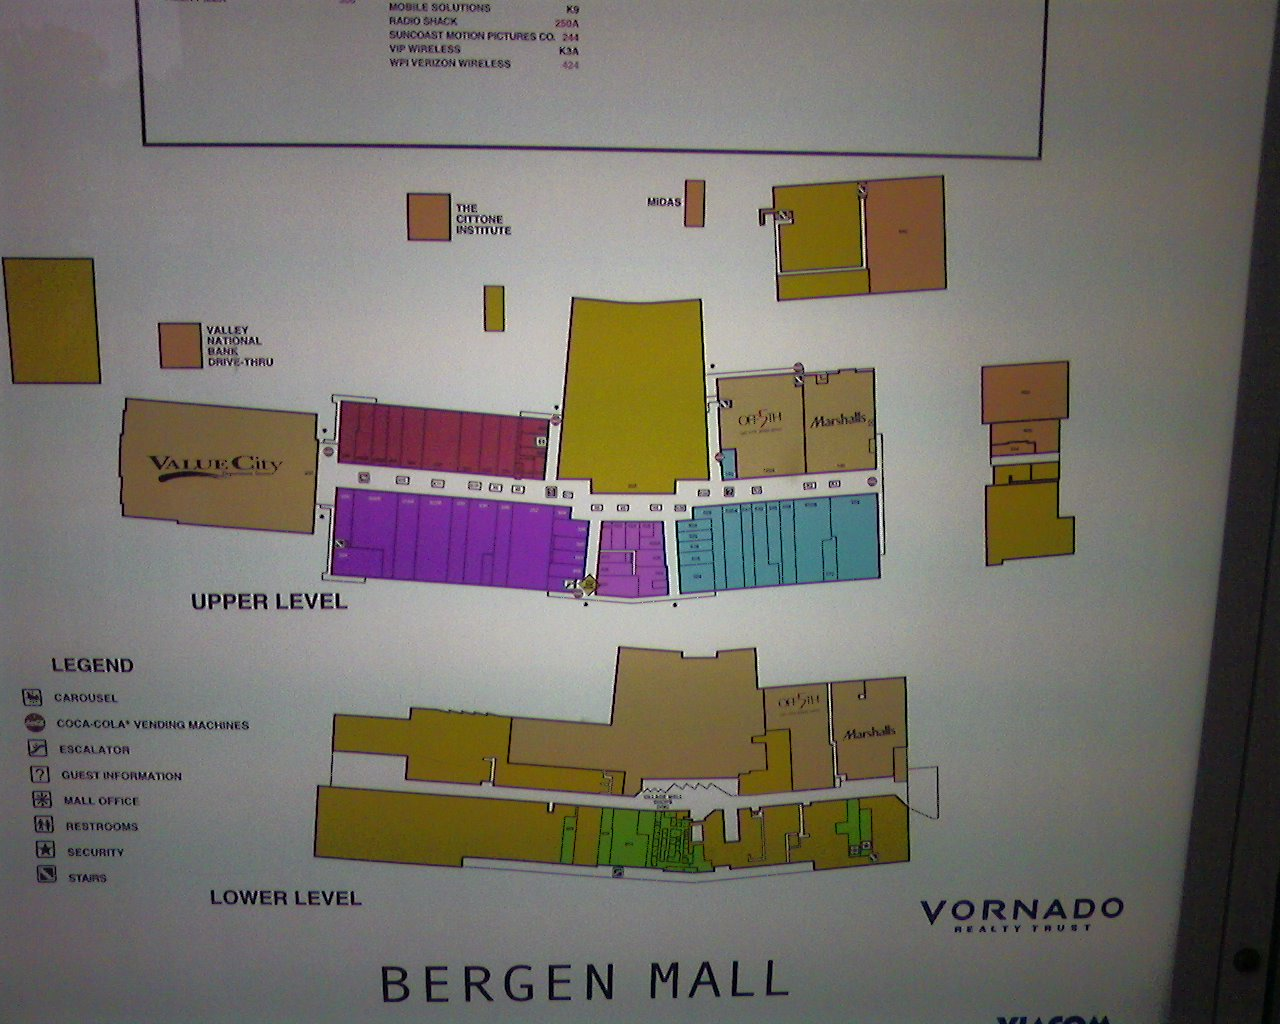 Mall directory of Bergen Mall in Paramus, New Jersey